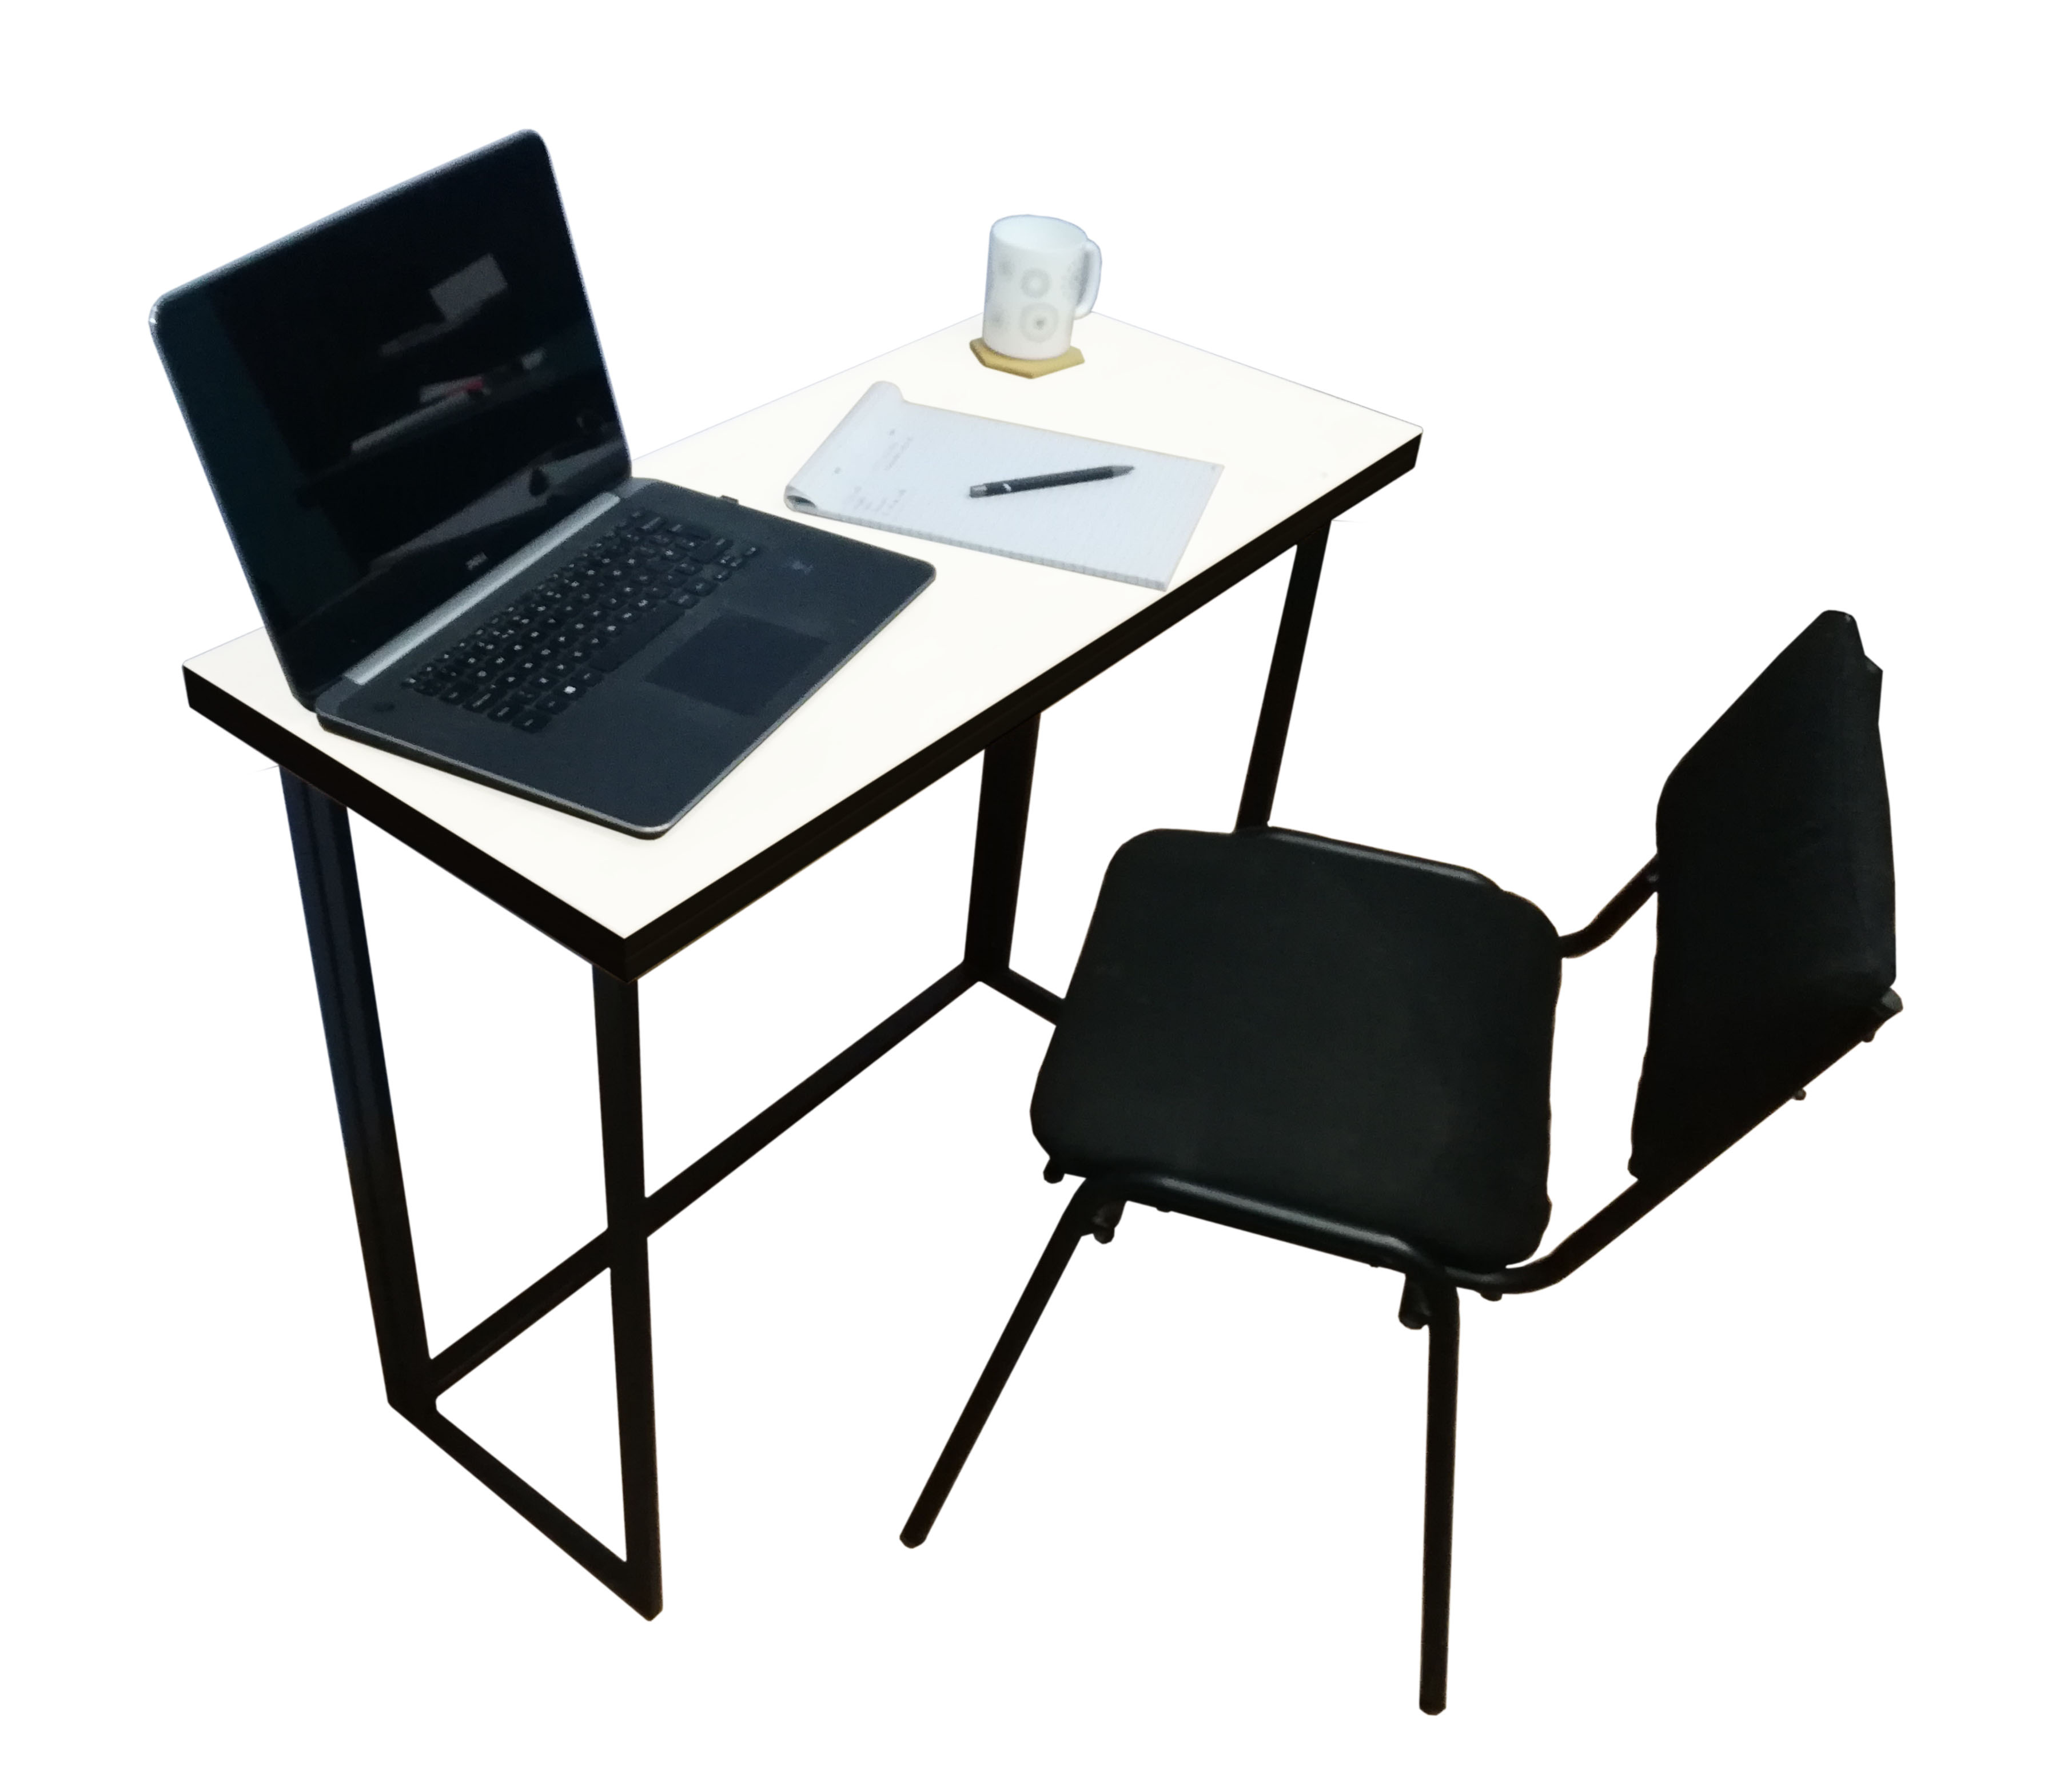 Smart Portable Folding Computer Laptop Table and Chair for Work from home office